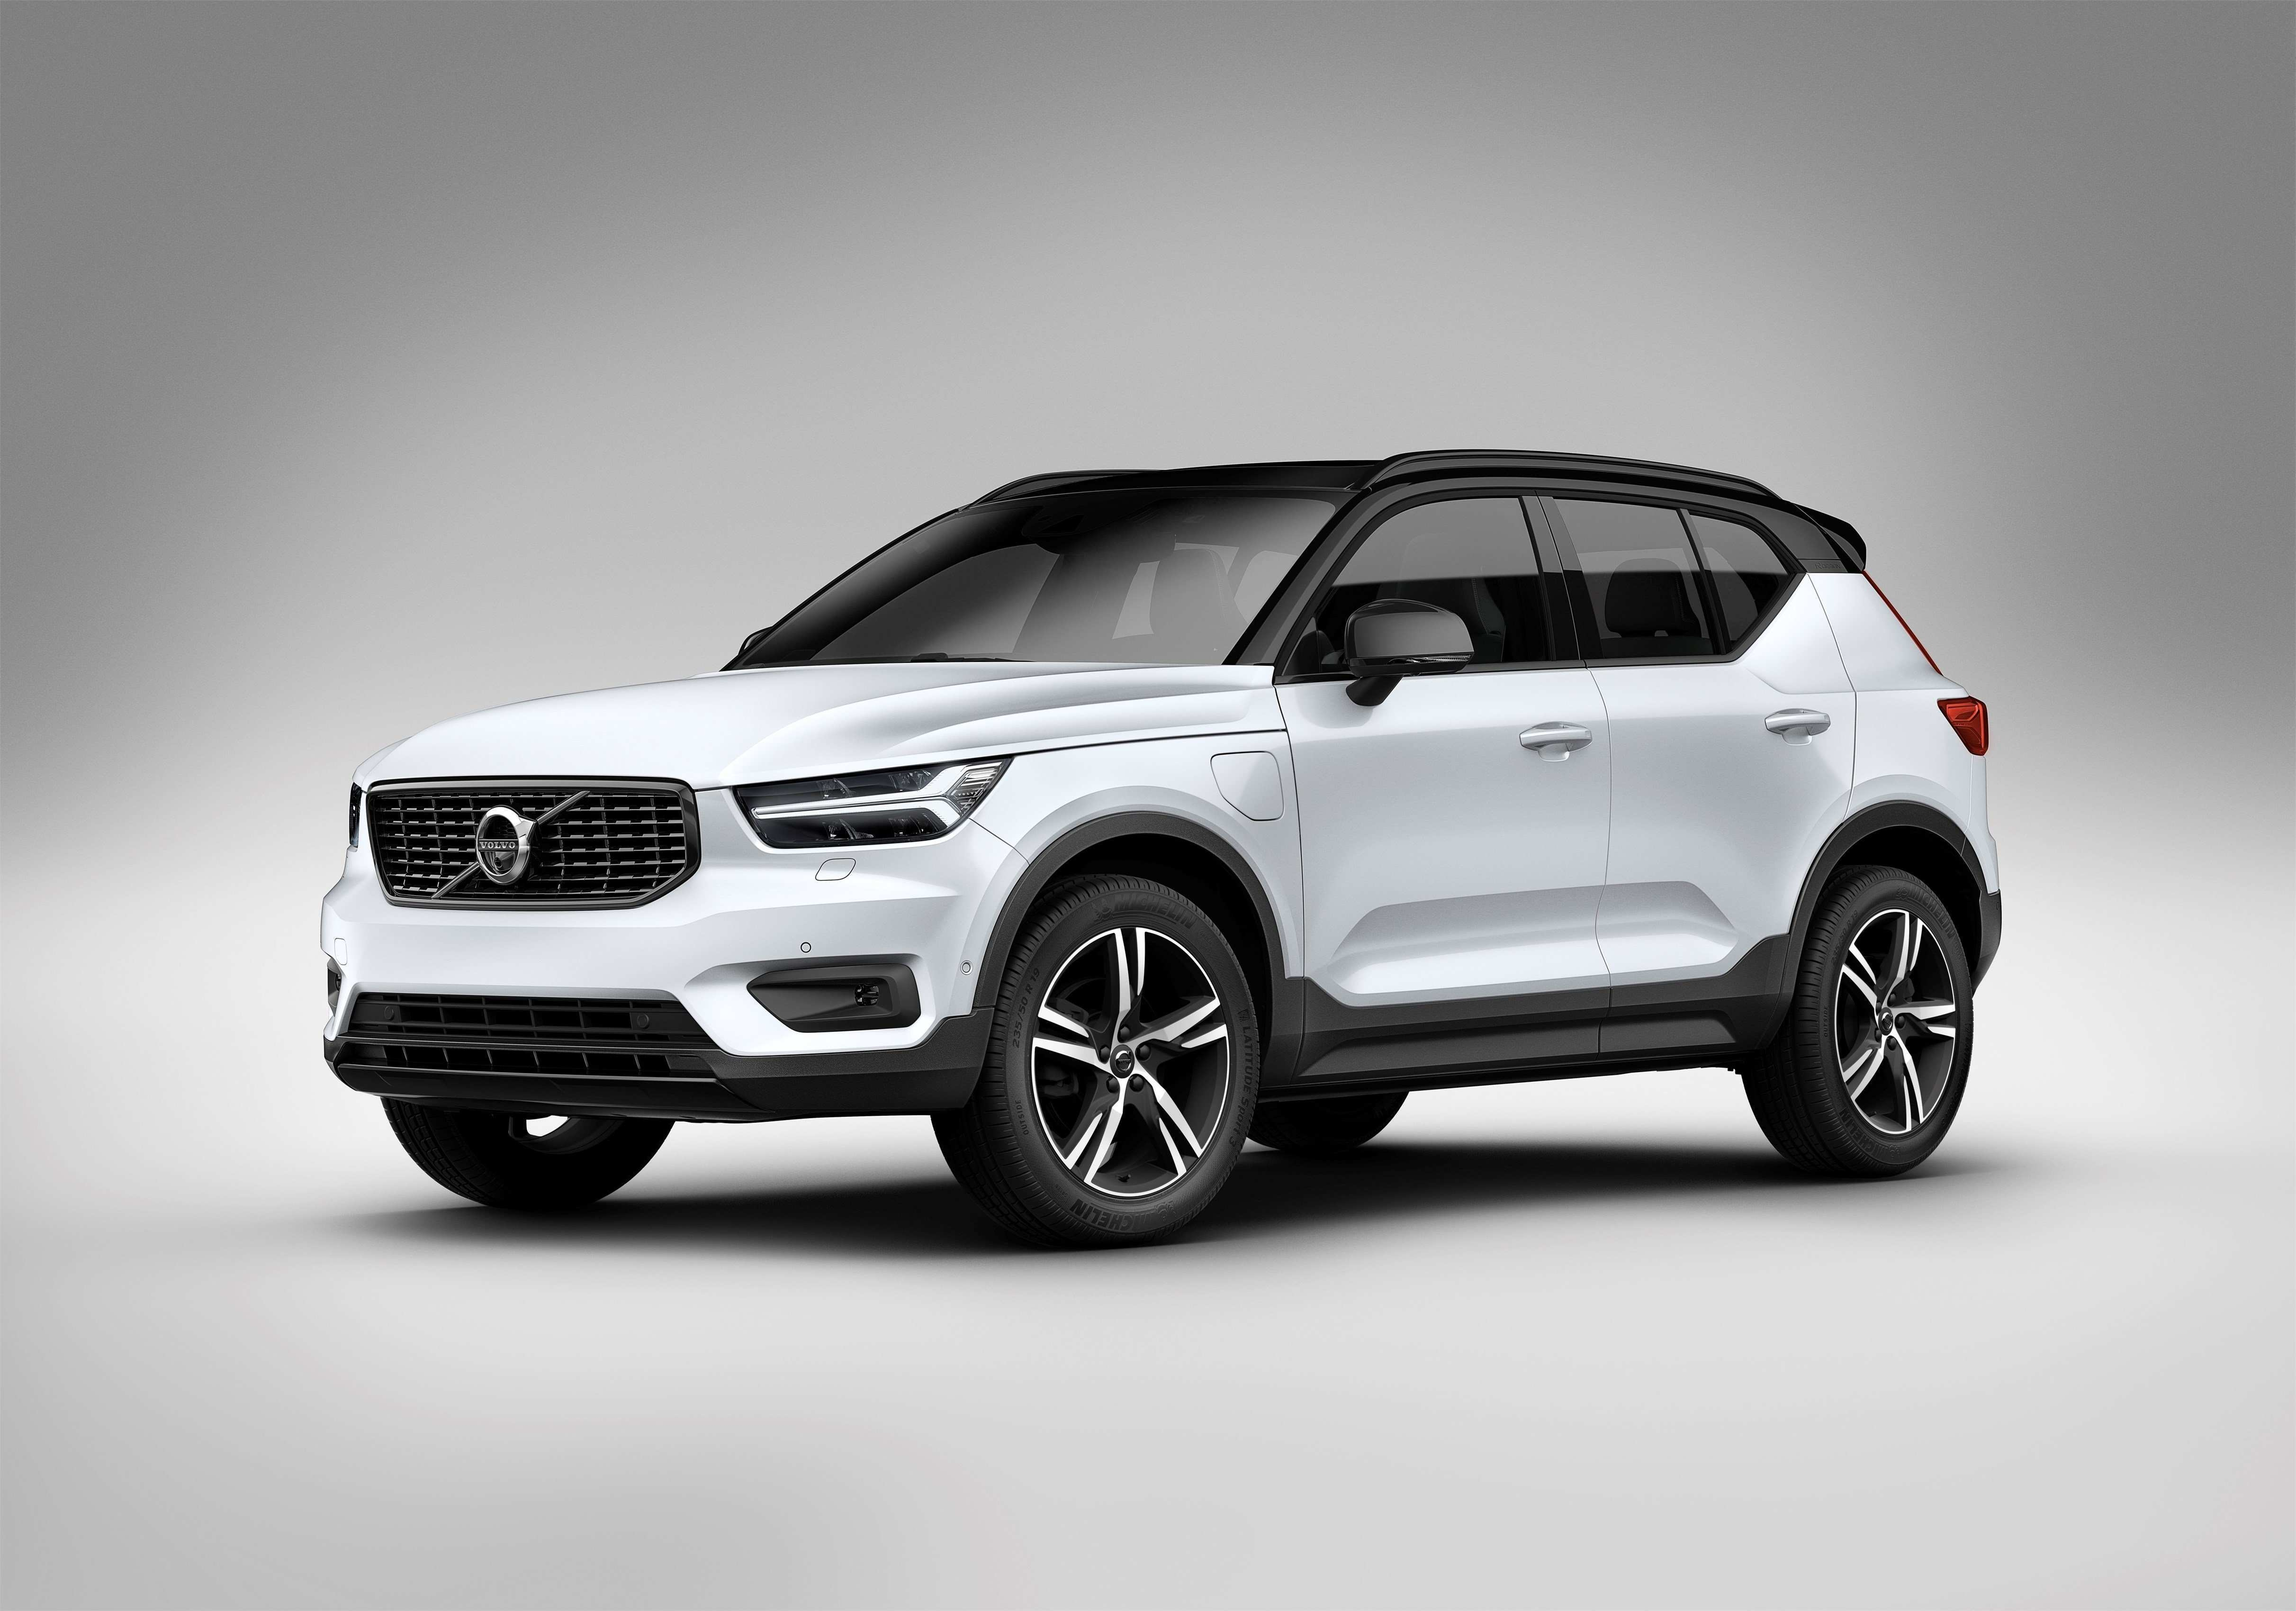 77 Great Best Volvo Electric Suv 2019 First Drive Price Performance And Review Spesification with Best Volvo Electric Suv 2019 First Drive Price Performance And Review